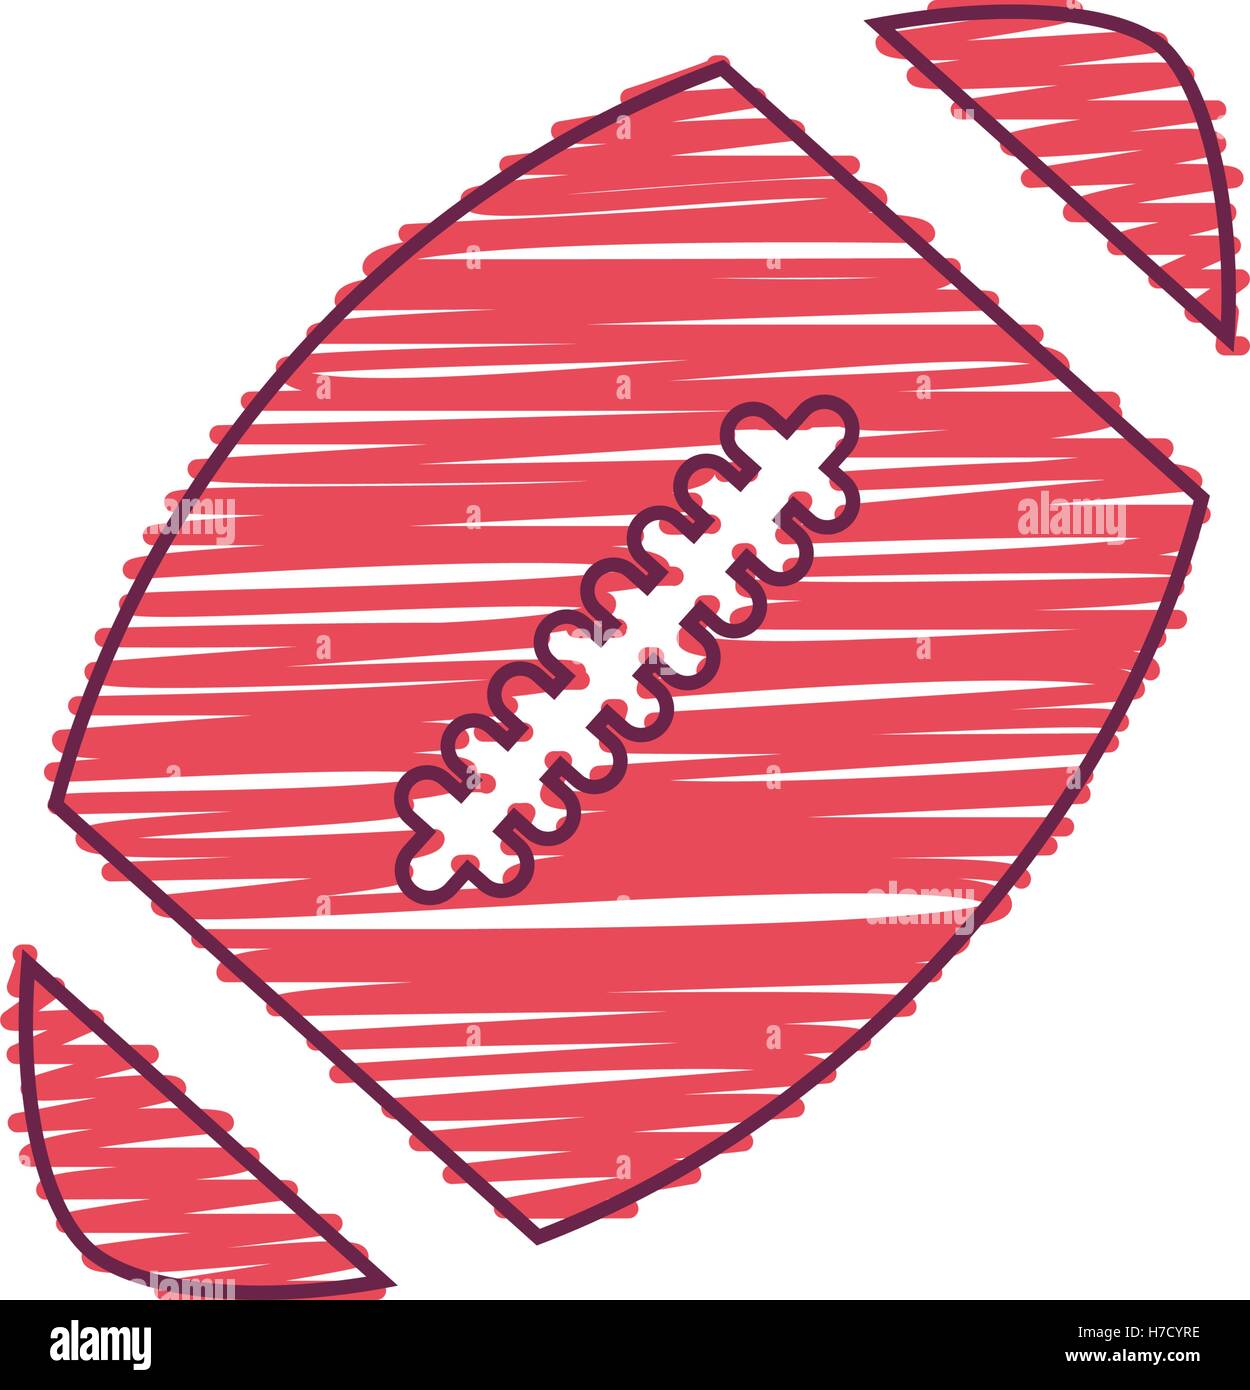 066771d095339e american football ball sport equipment icon over white background. draw and  sketch design. vector illustration